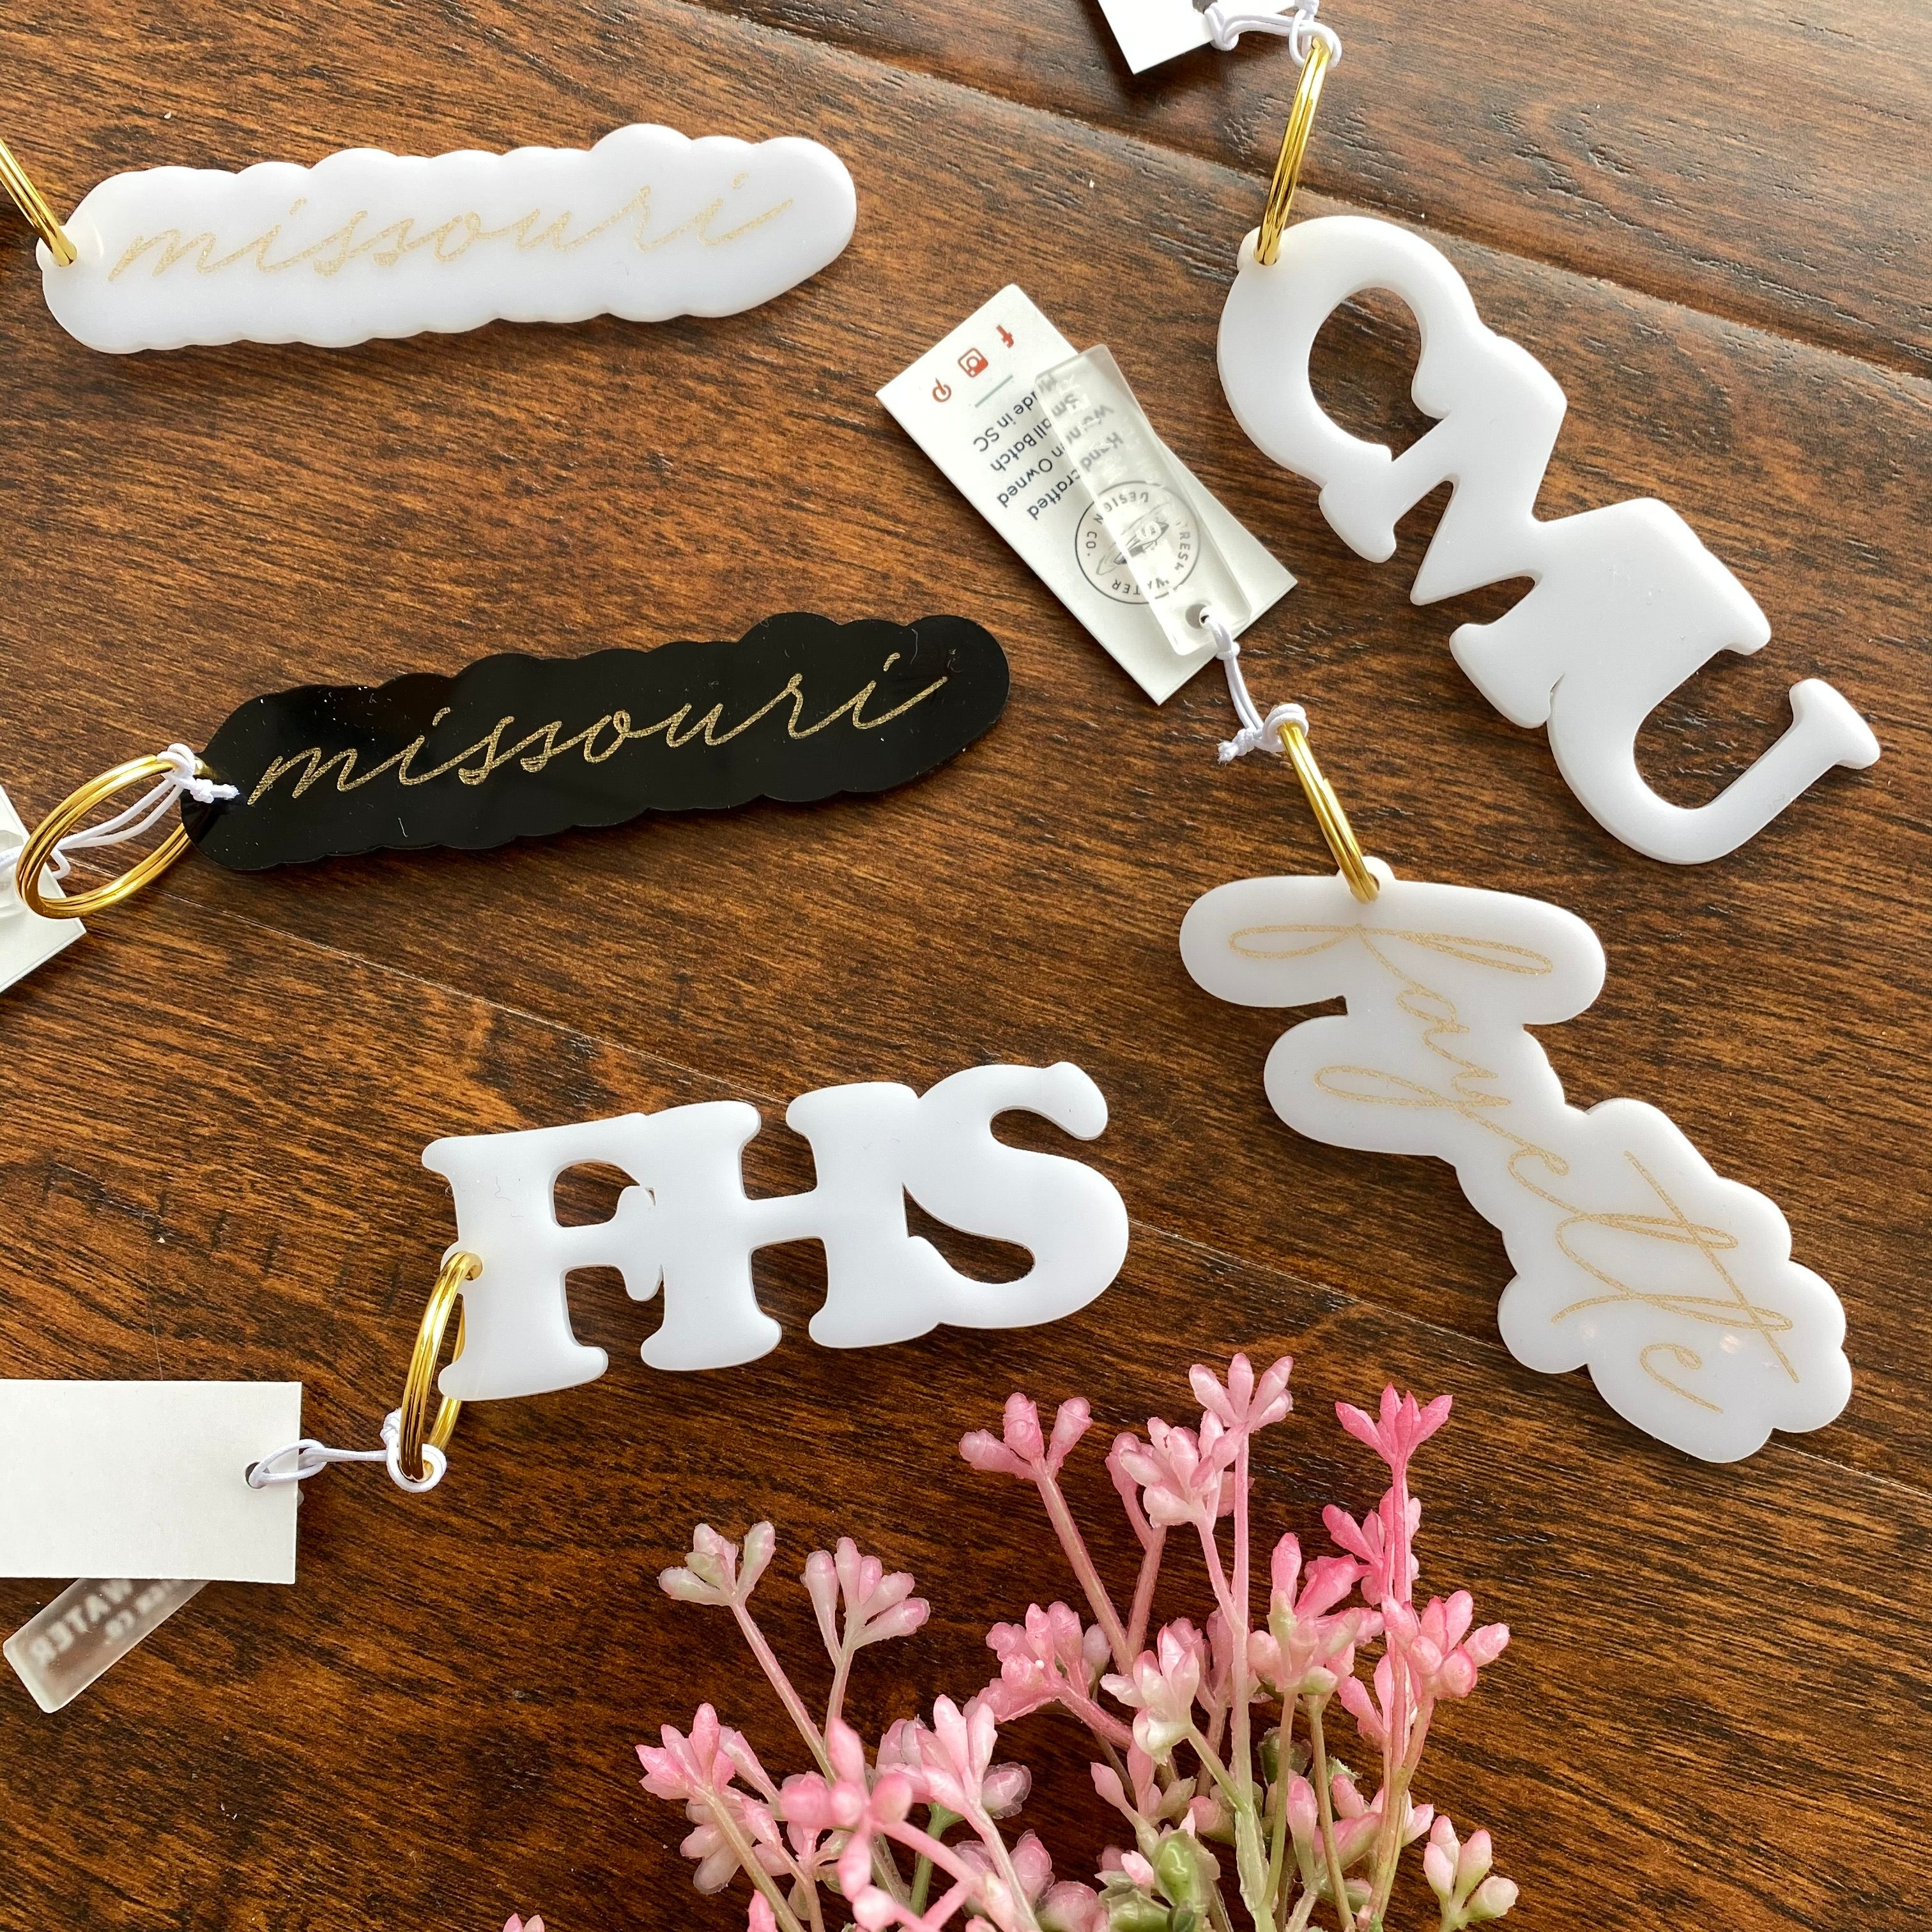 White missouri, black missouri, CMU, FHS, and Fayette acrylic keychains sit together on wood surface with pink florals